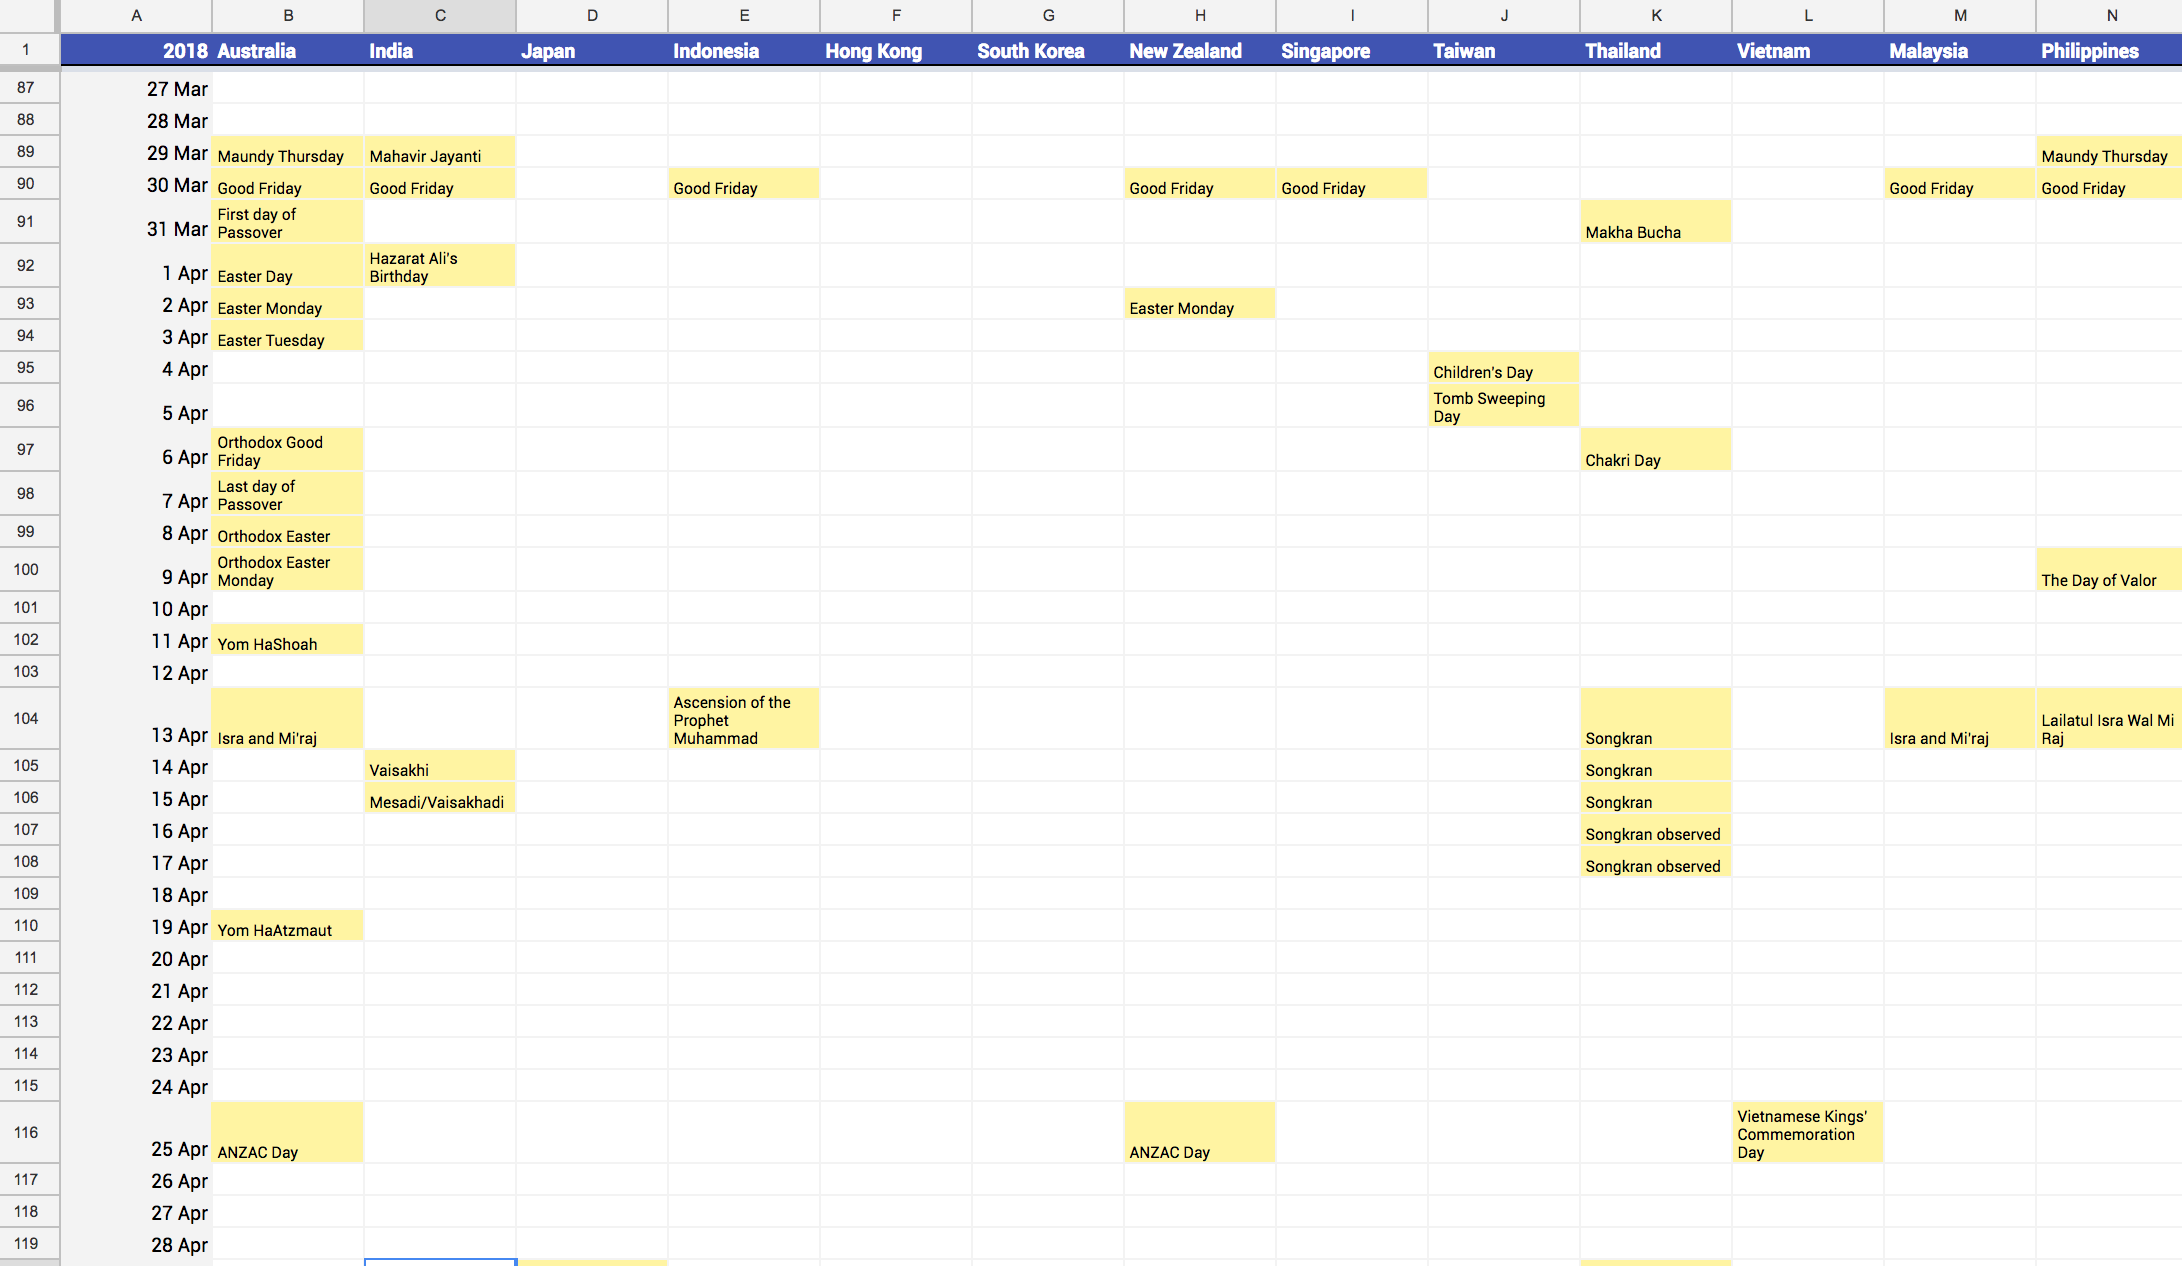 Multi-country calendar aggregator on Google Sheets